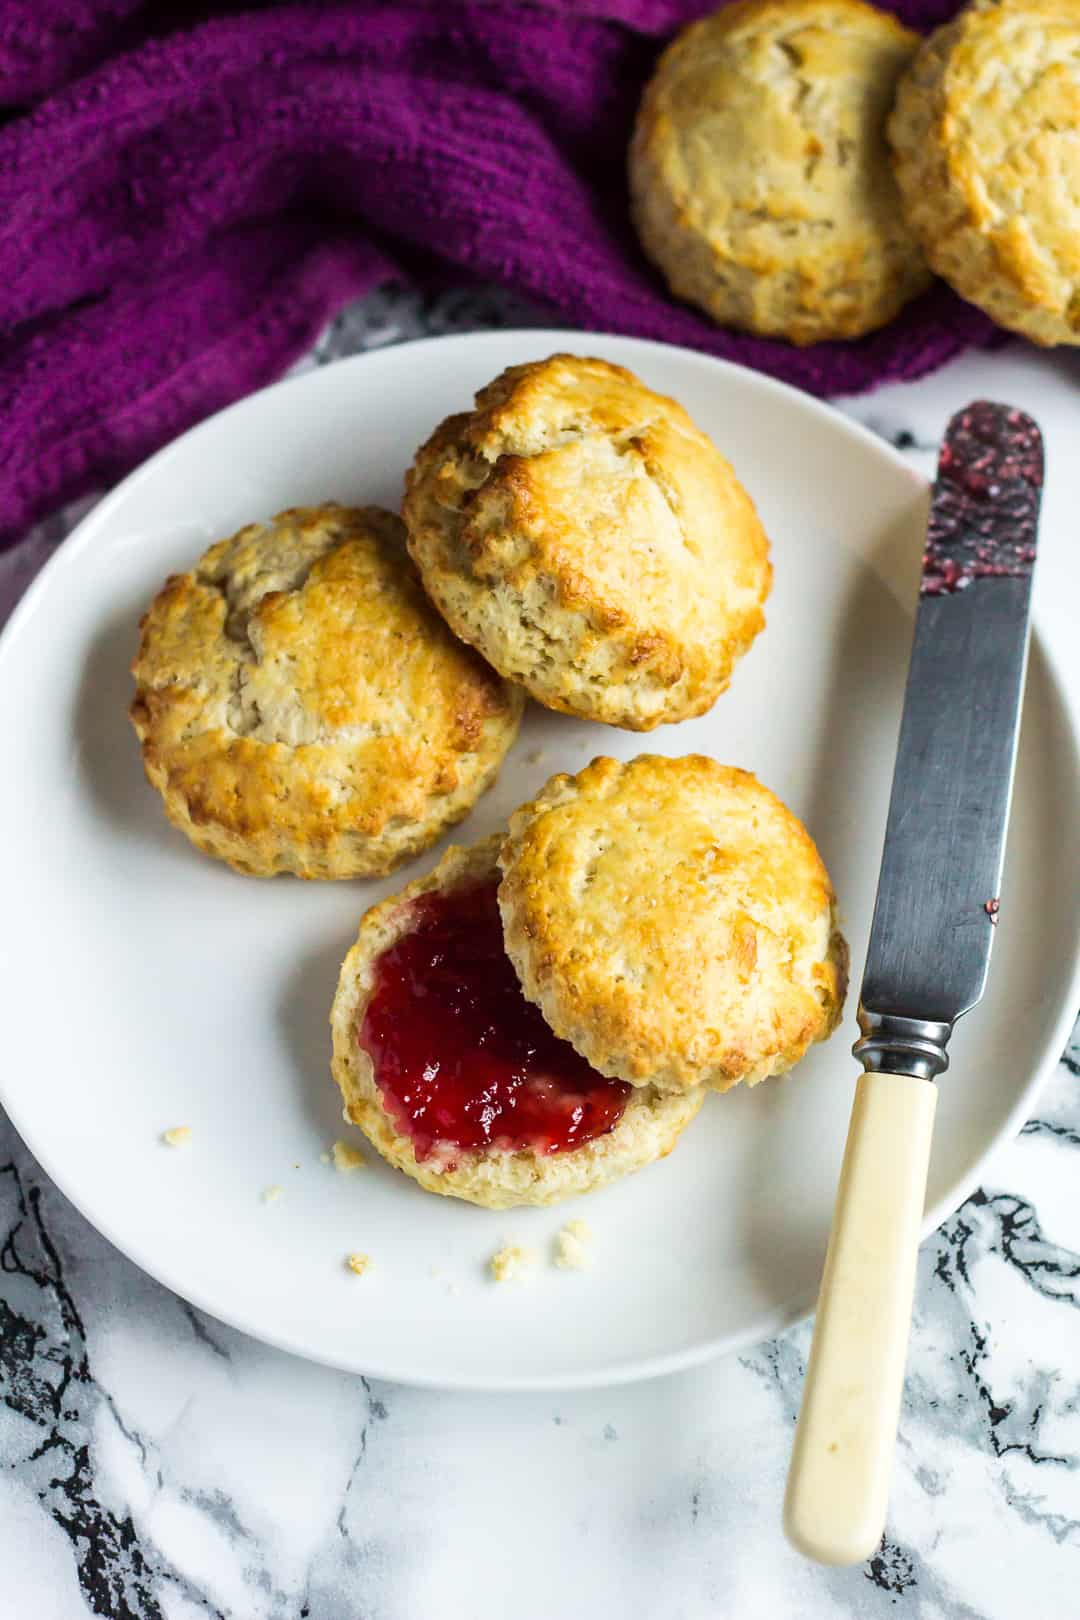 Overhead shot of Classic English Scones served on a small white plate with palette knife.